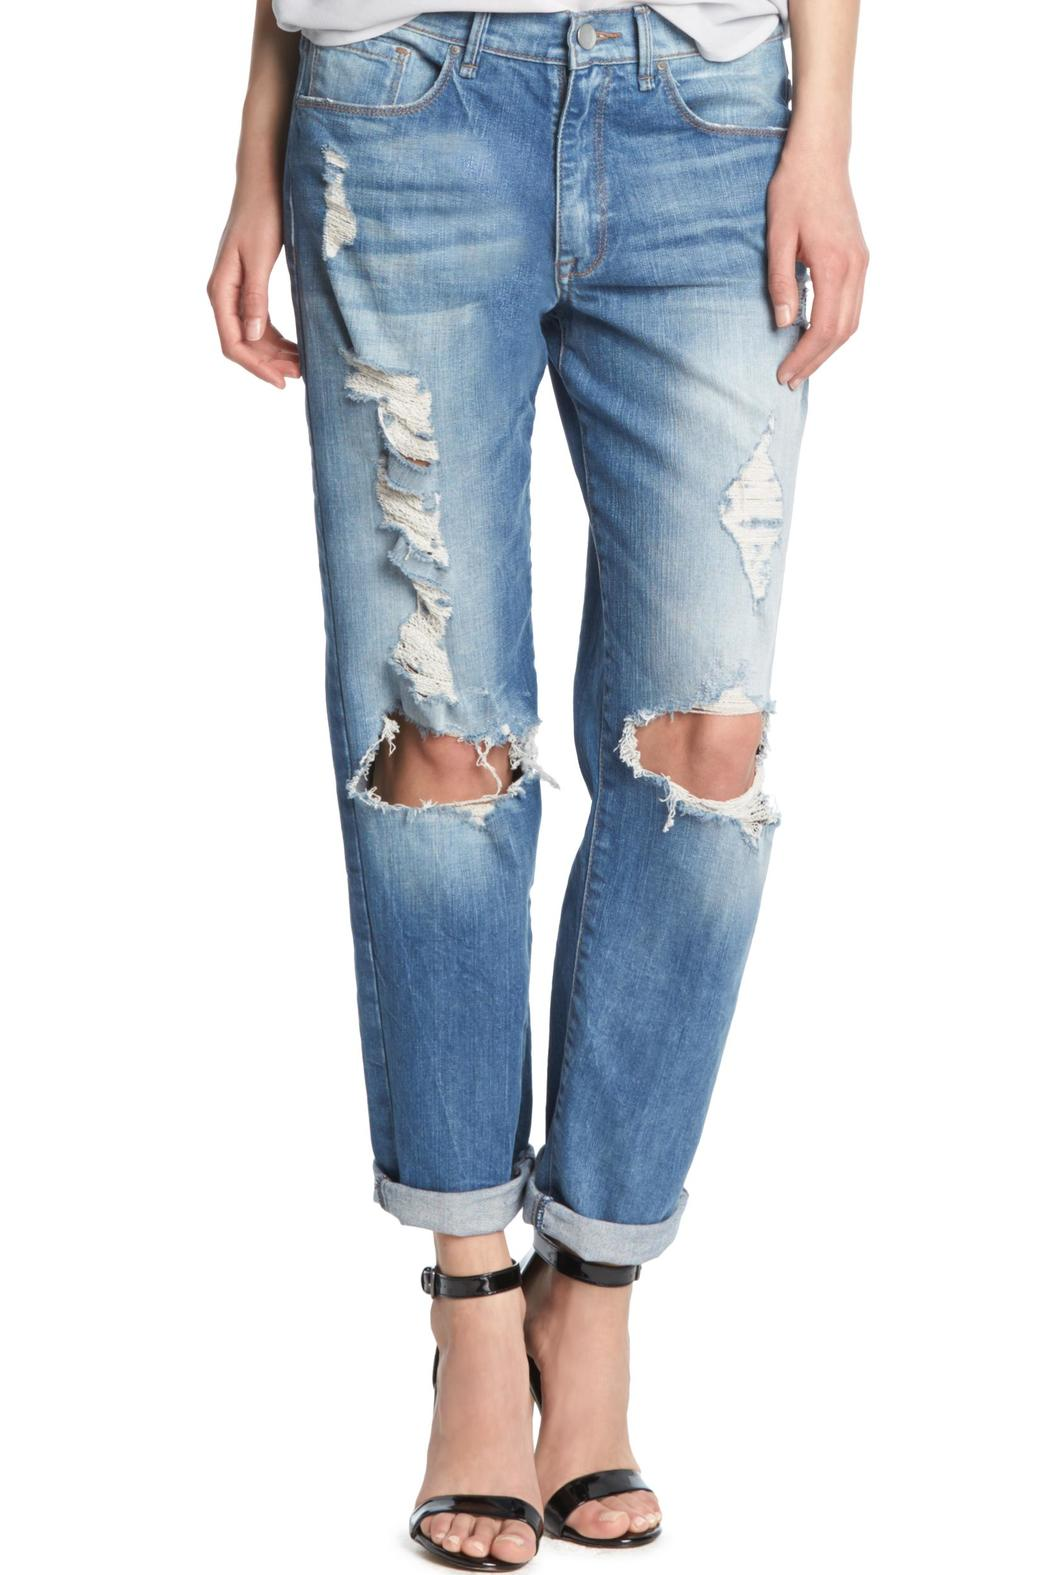 Kiind Of Ex-Boyfriend Jeans from Florida by LoveRich Boutique ... 1c12cd82e